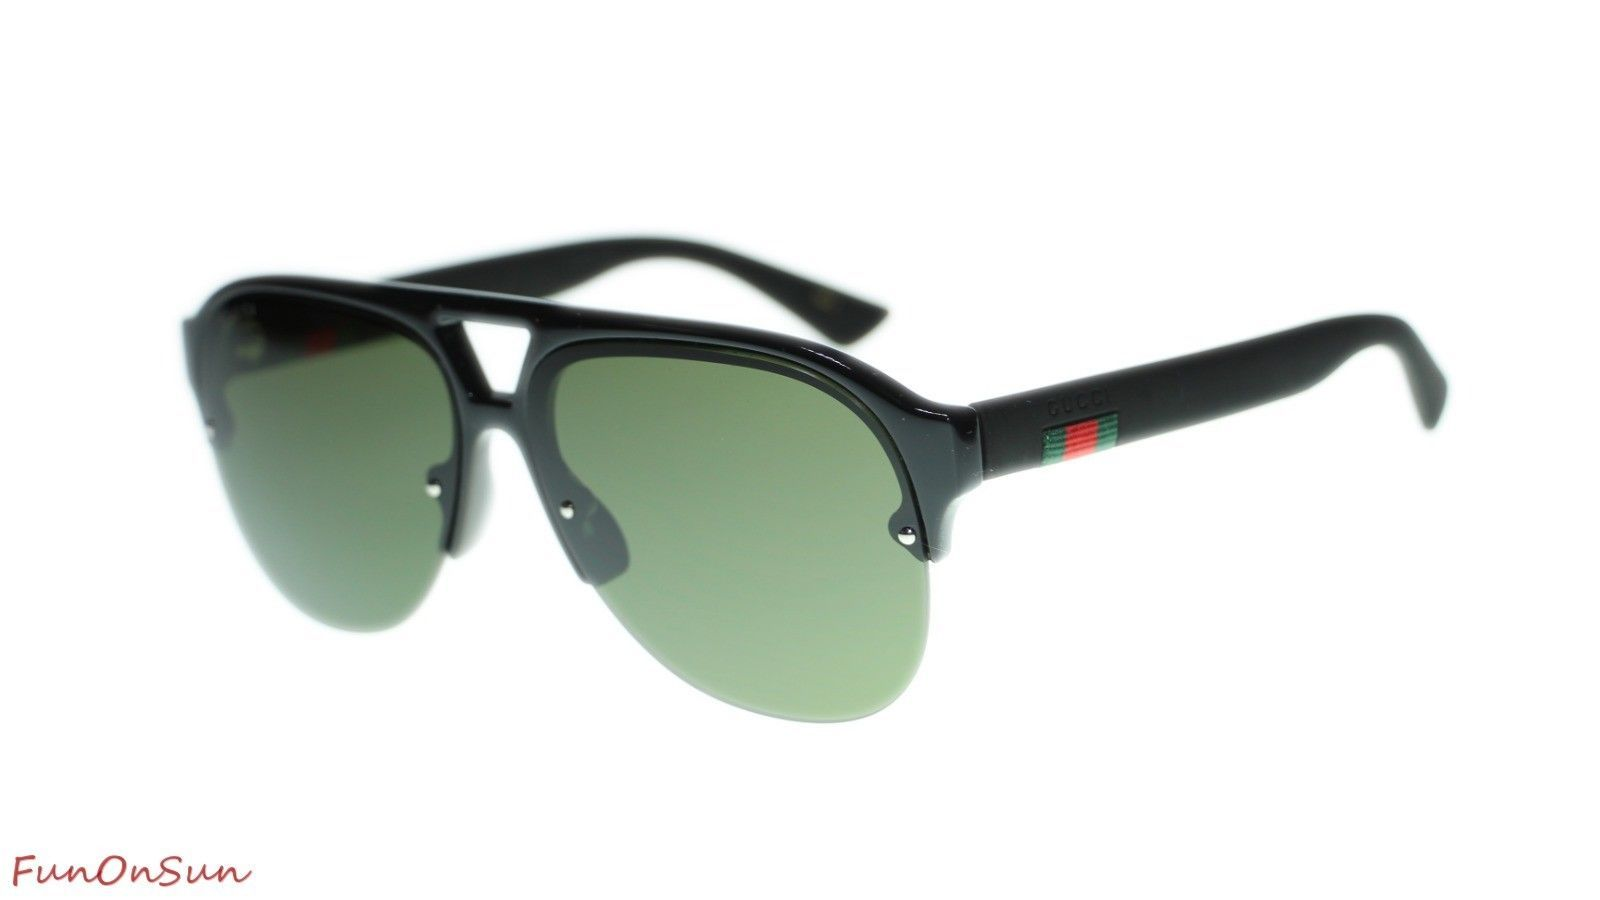 2d46087d89 10. 10. Previous. NEW Gucci Men Sunglasses GG0170S 001 Black Green Lens  Pilot 59mm Authentic. NEW Gucci Men Sunglasses ...